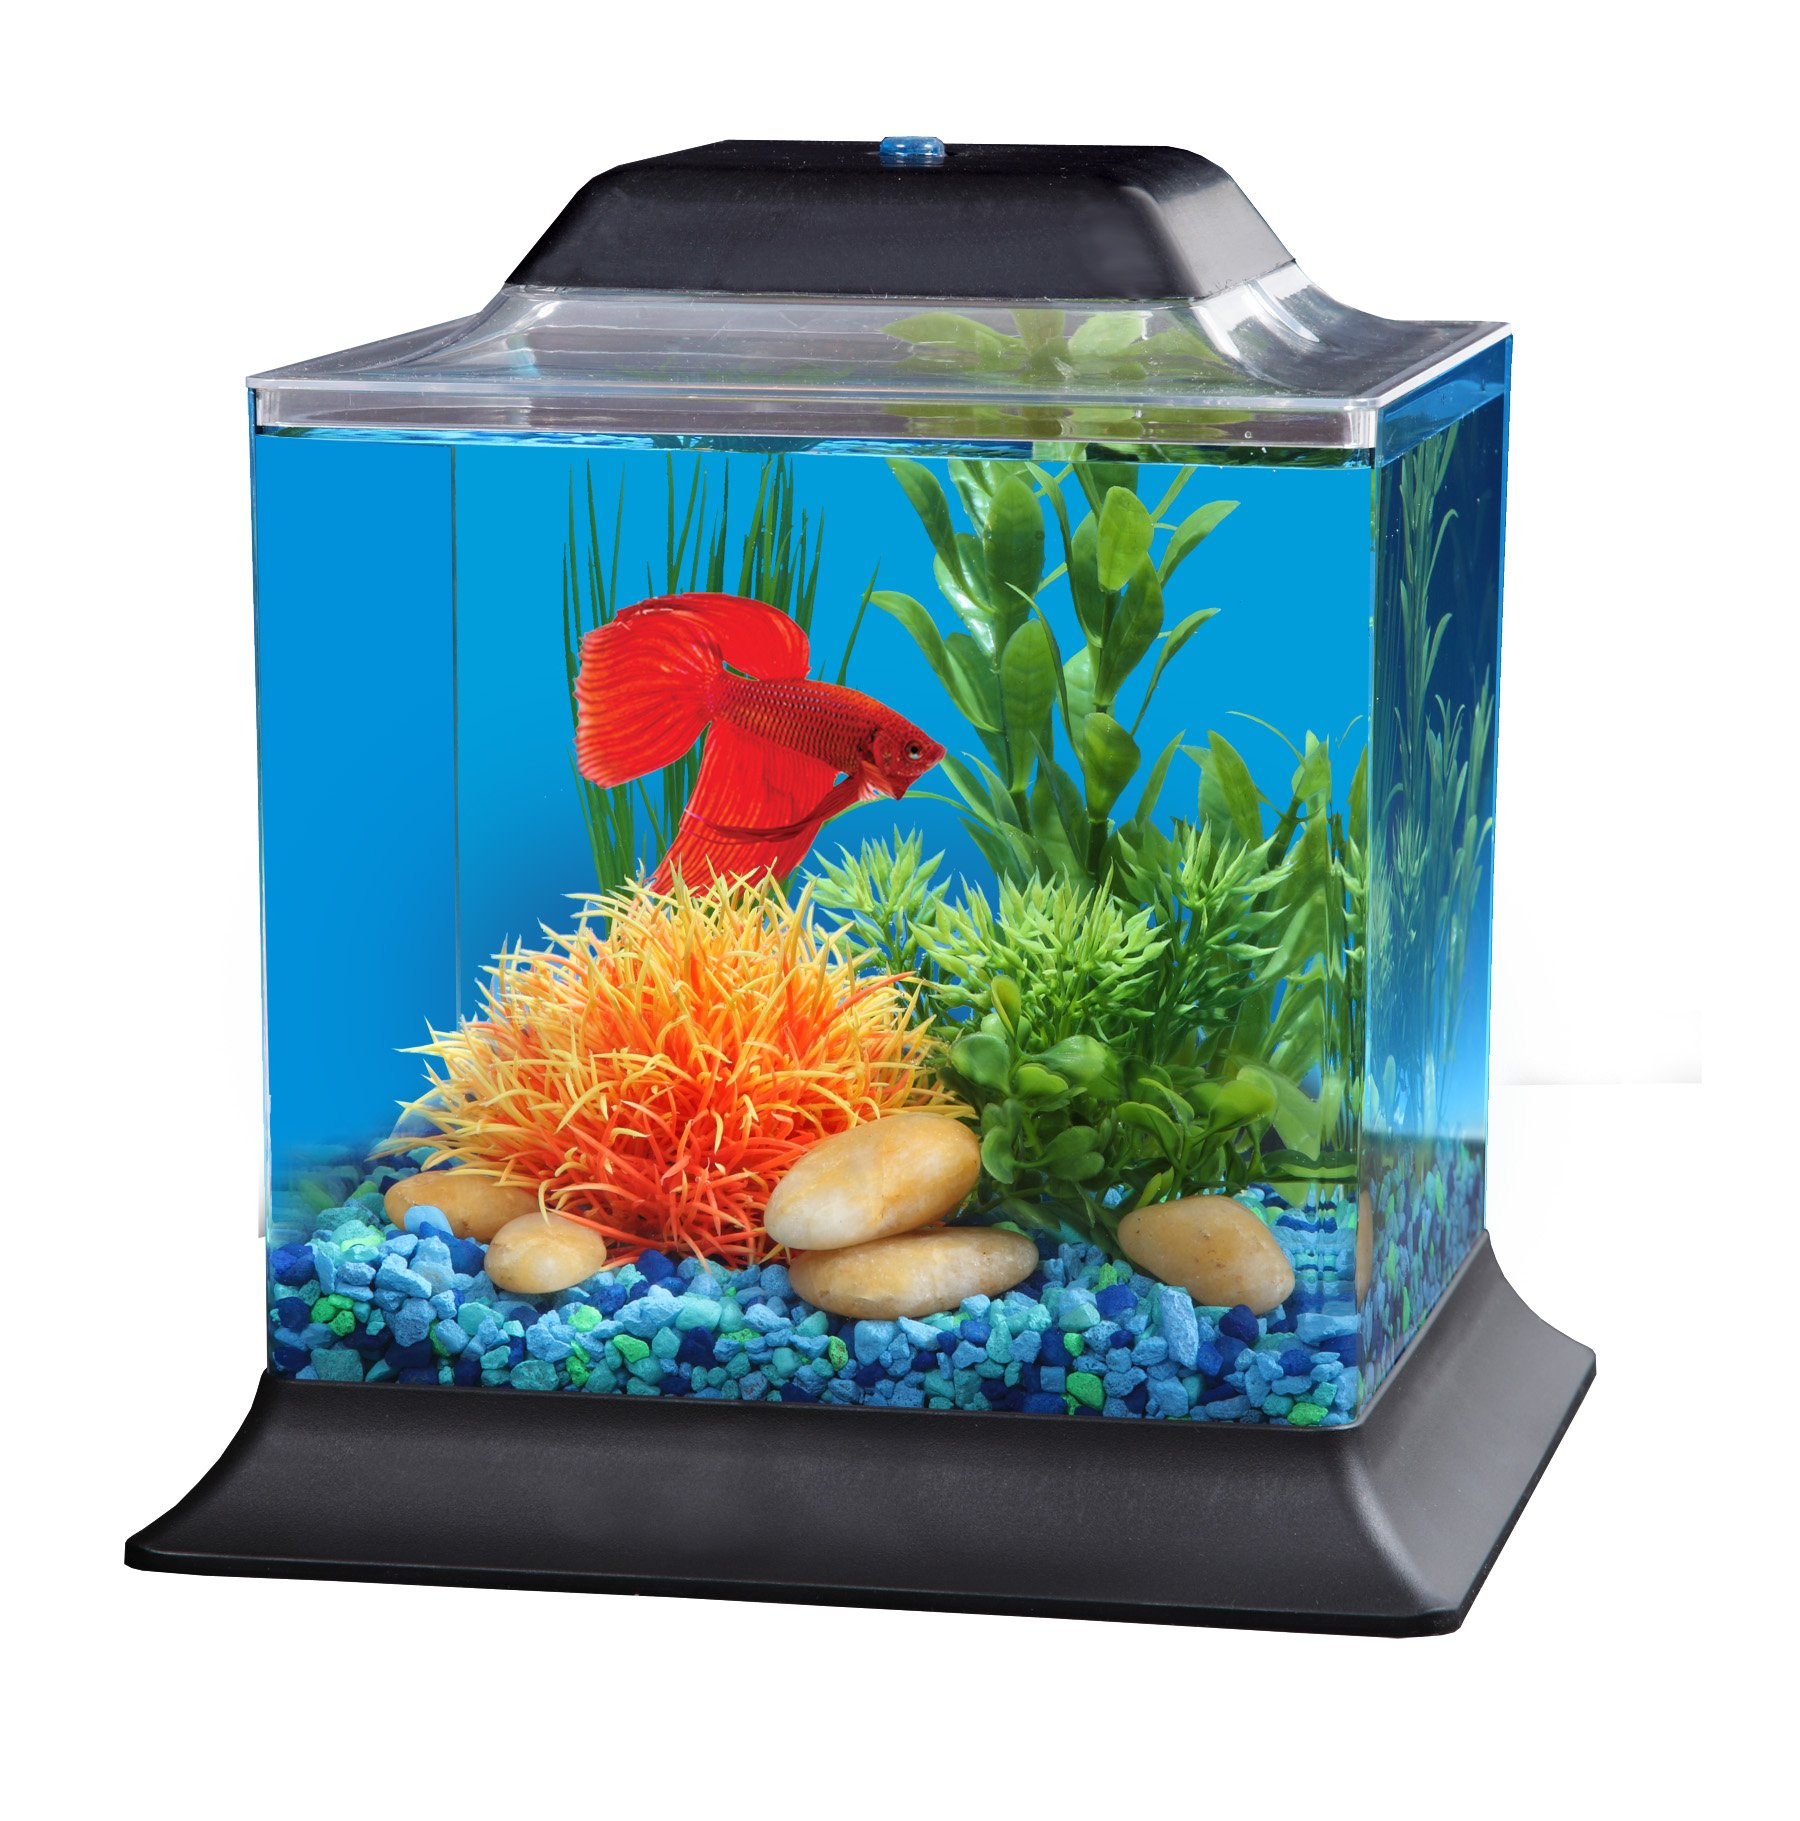 Koller Products 1.5-Gallon AquaScene Aquarium with LED Lighting by Koller Products